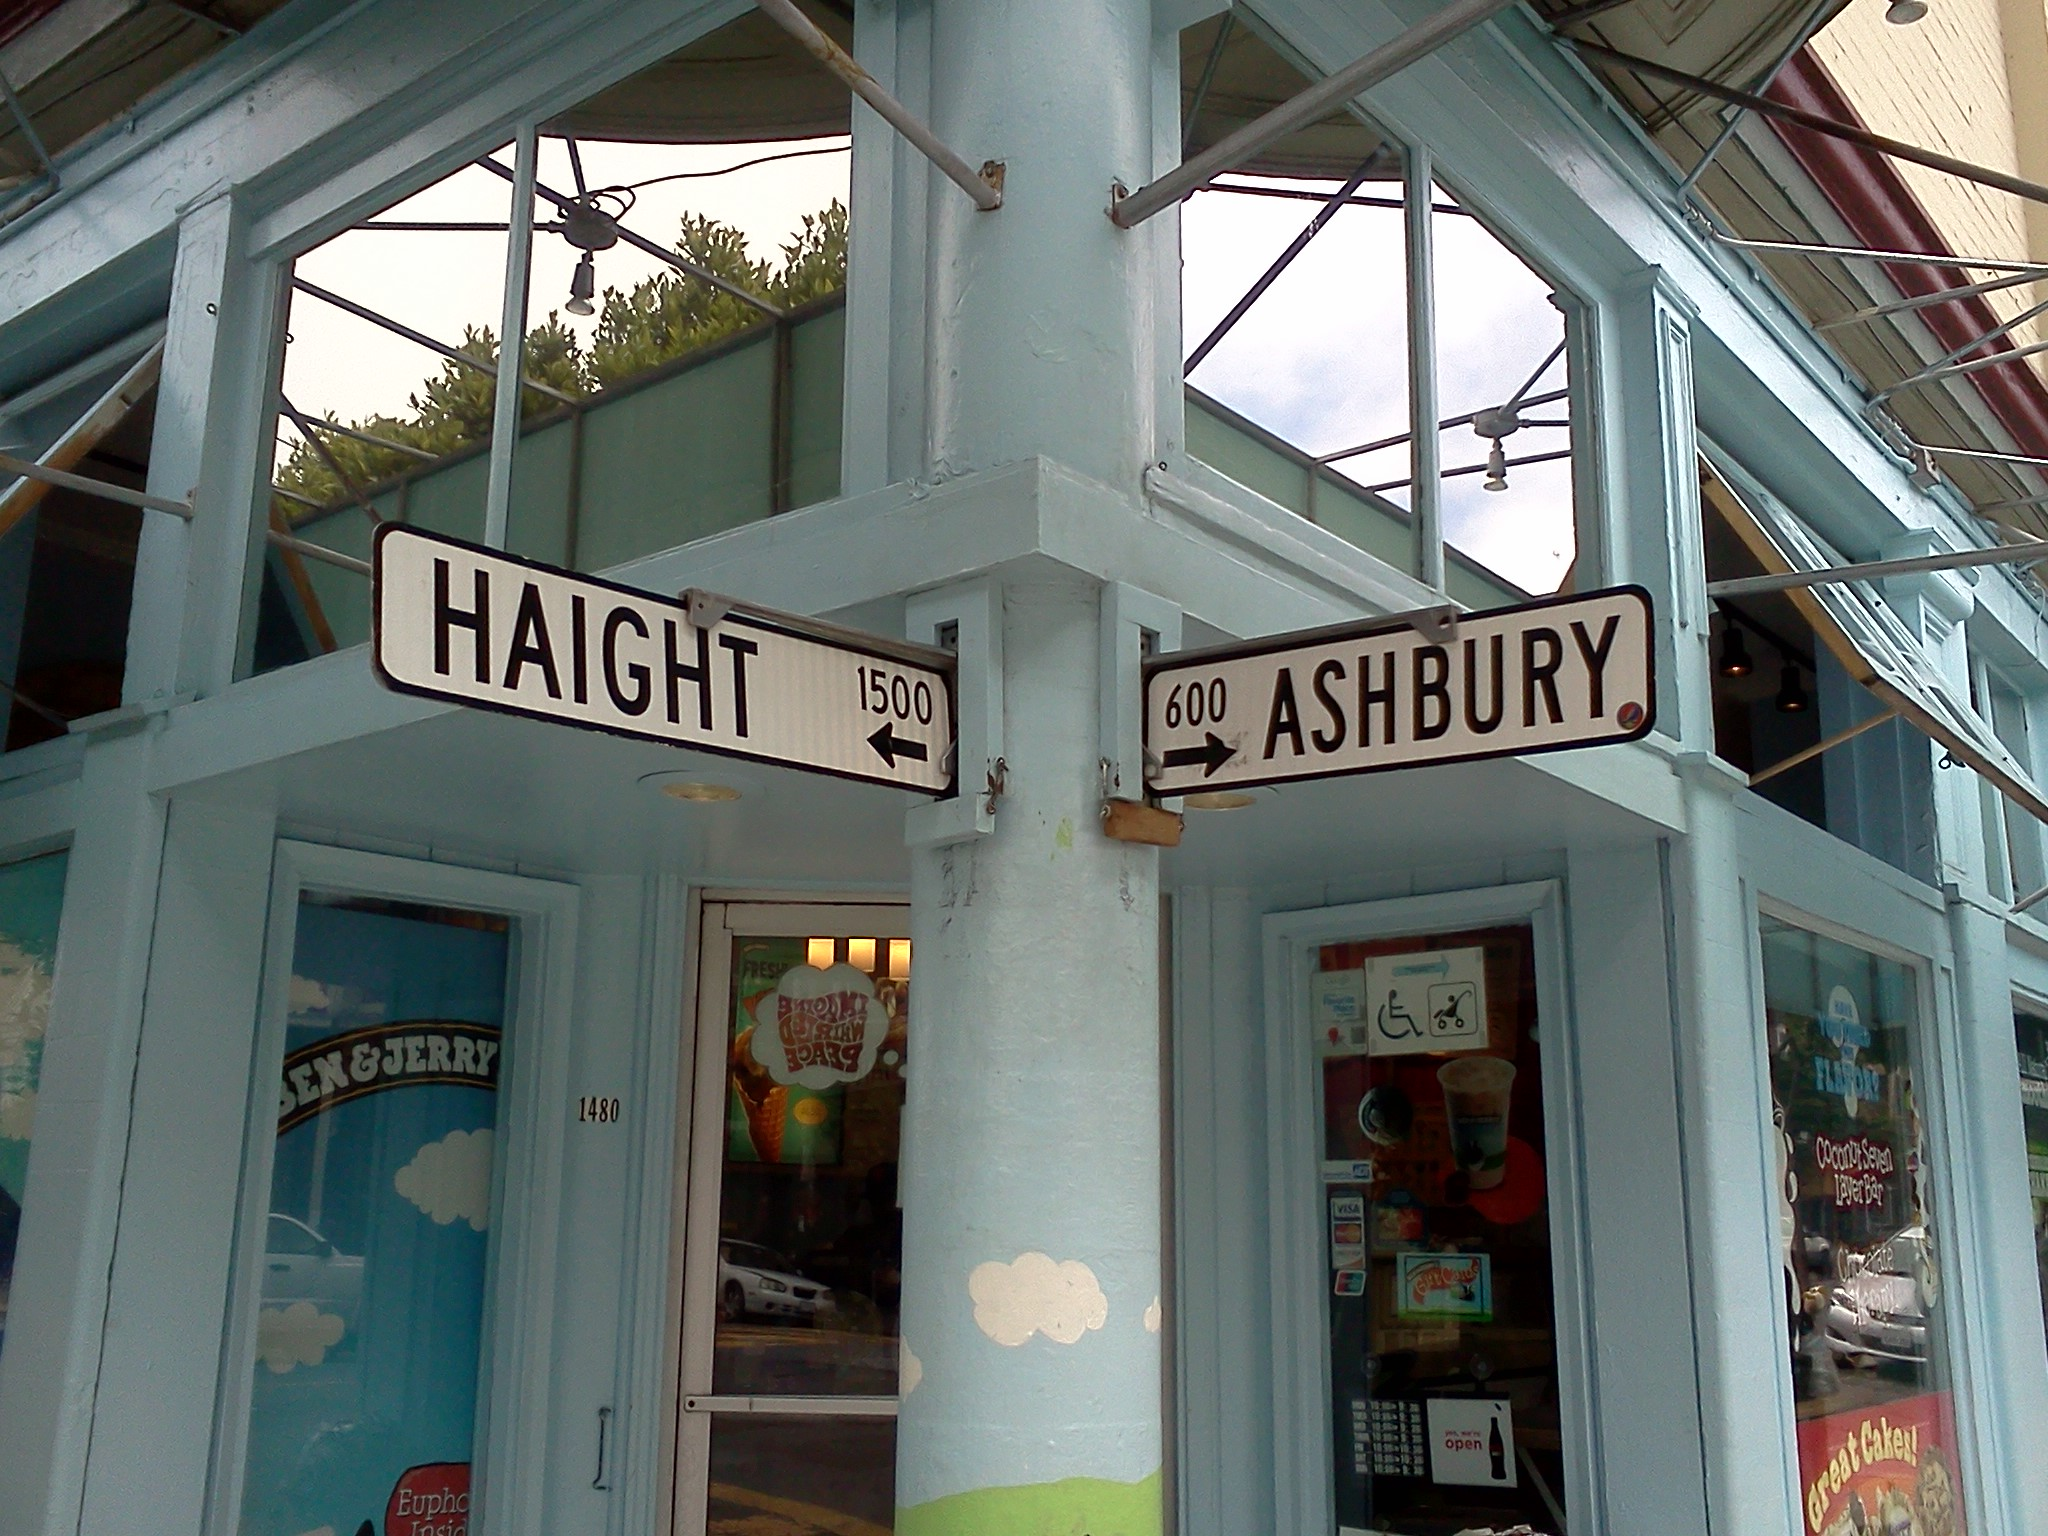 Haight Ashbury, August 2011